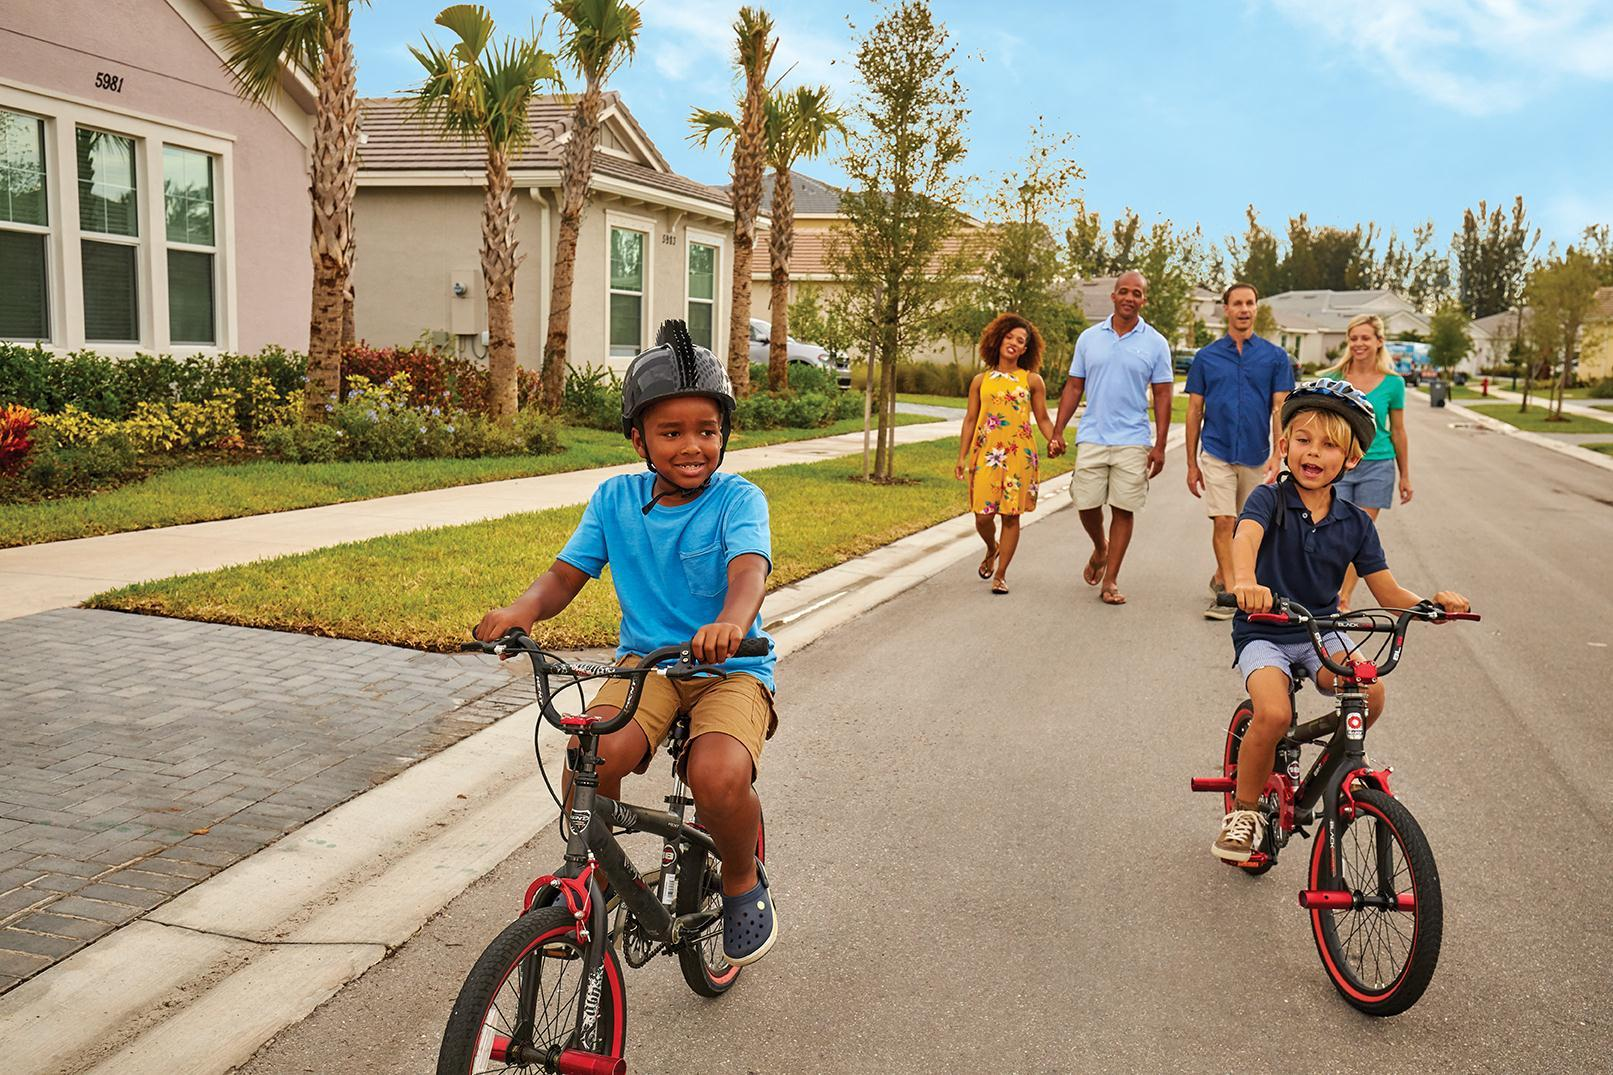 'Westlake' by Minto Communities in Palm Beach County